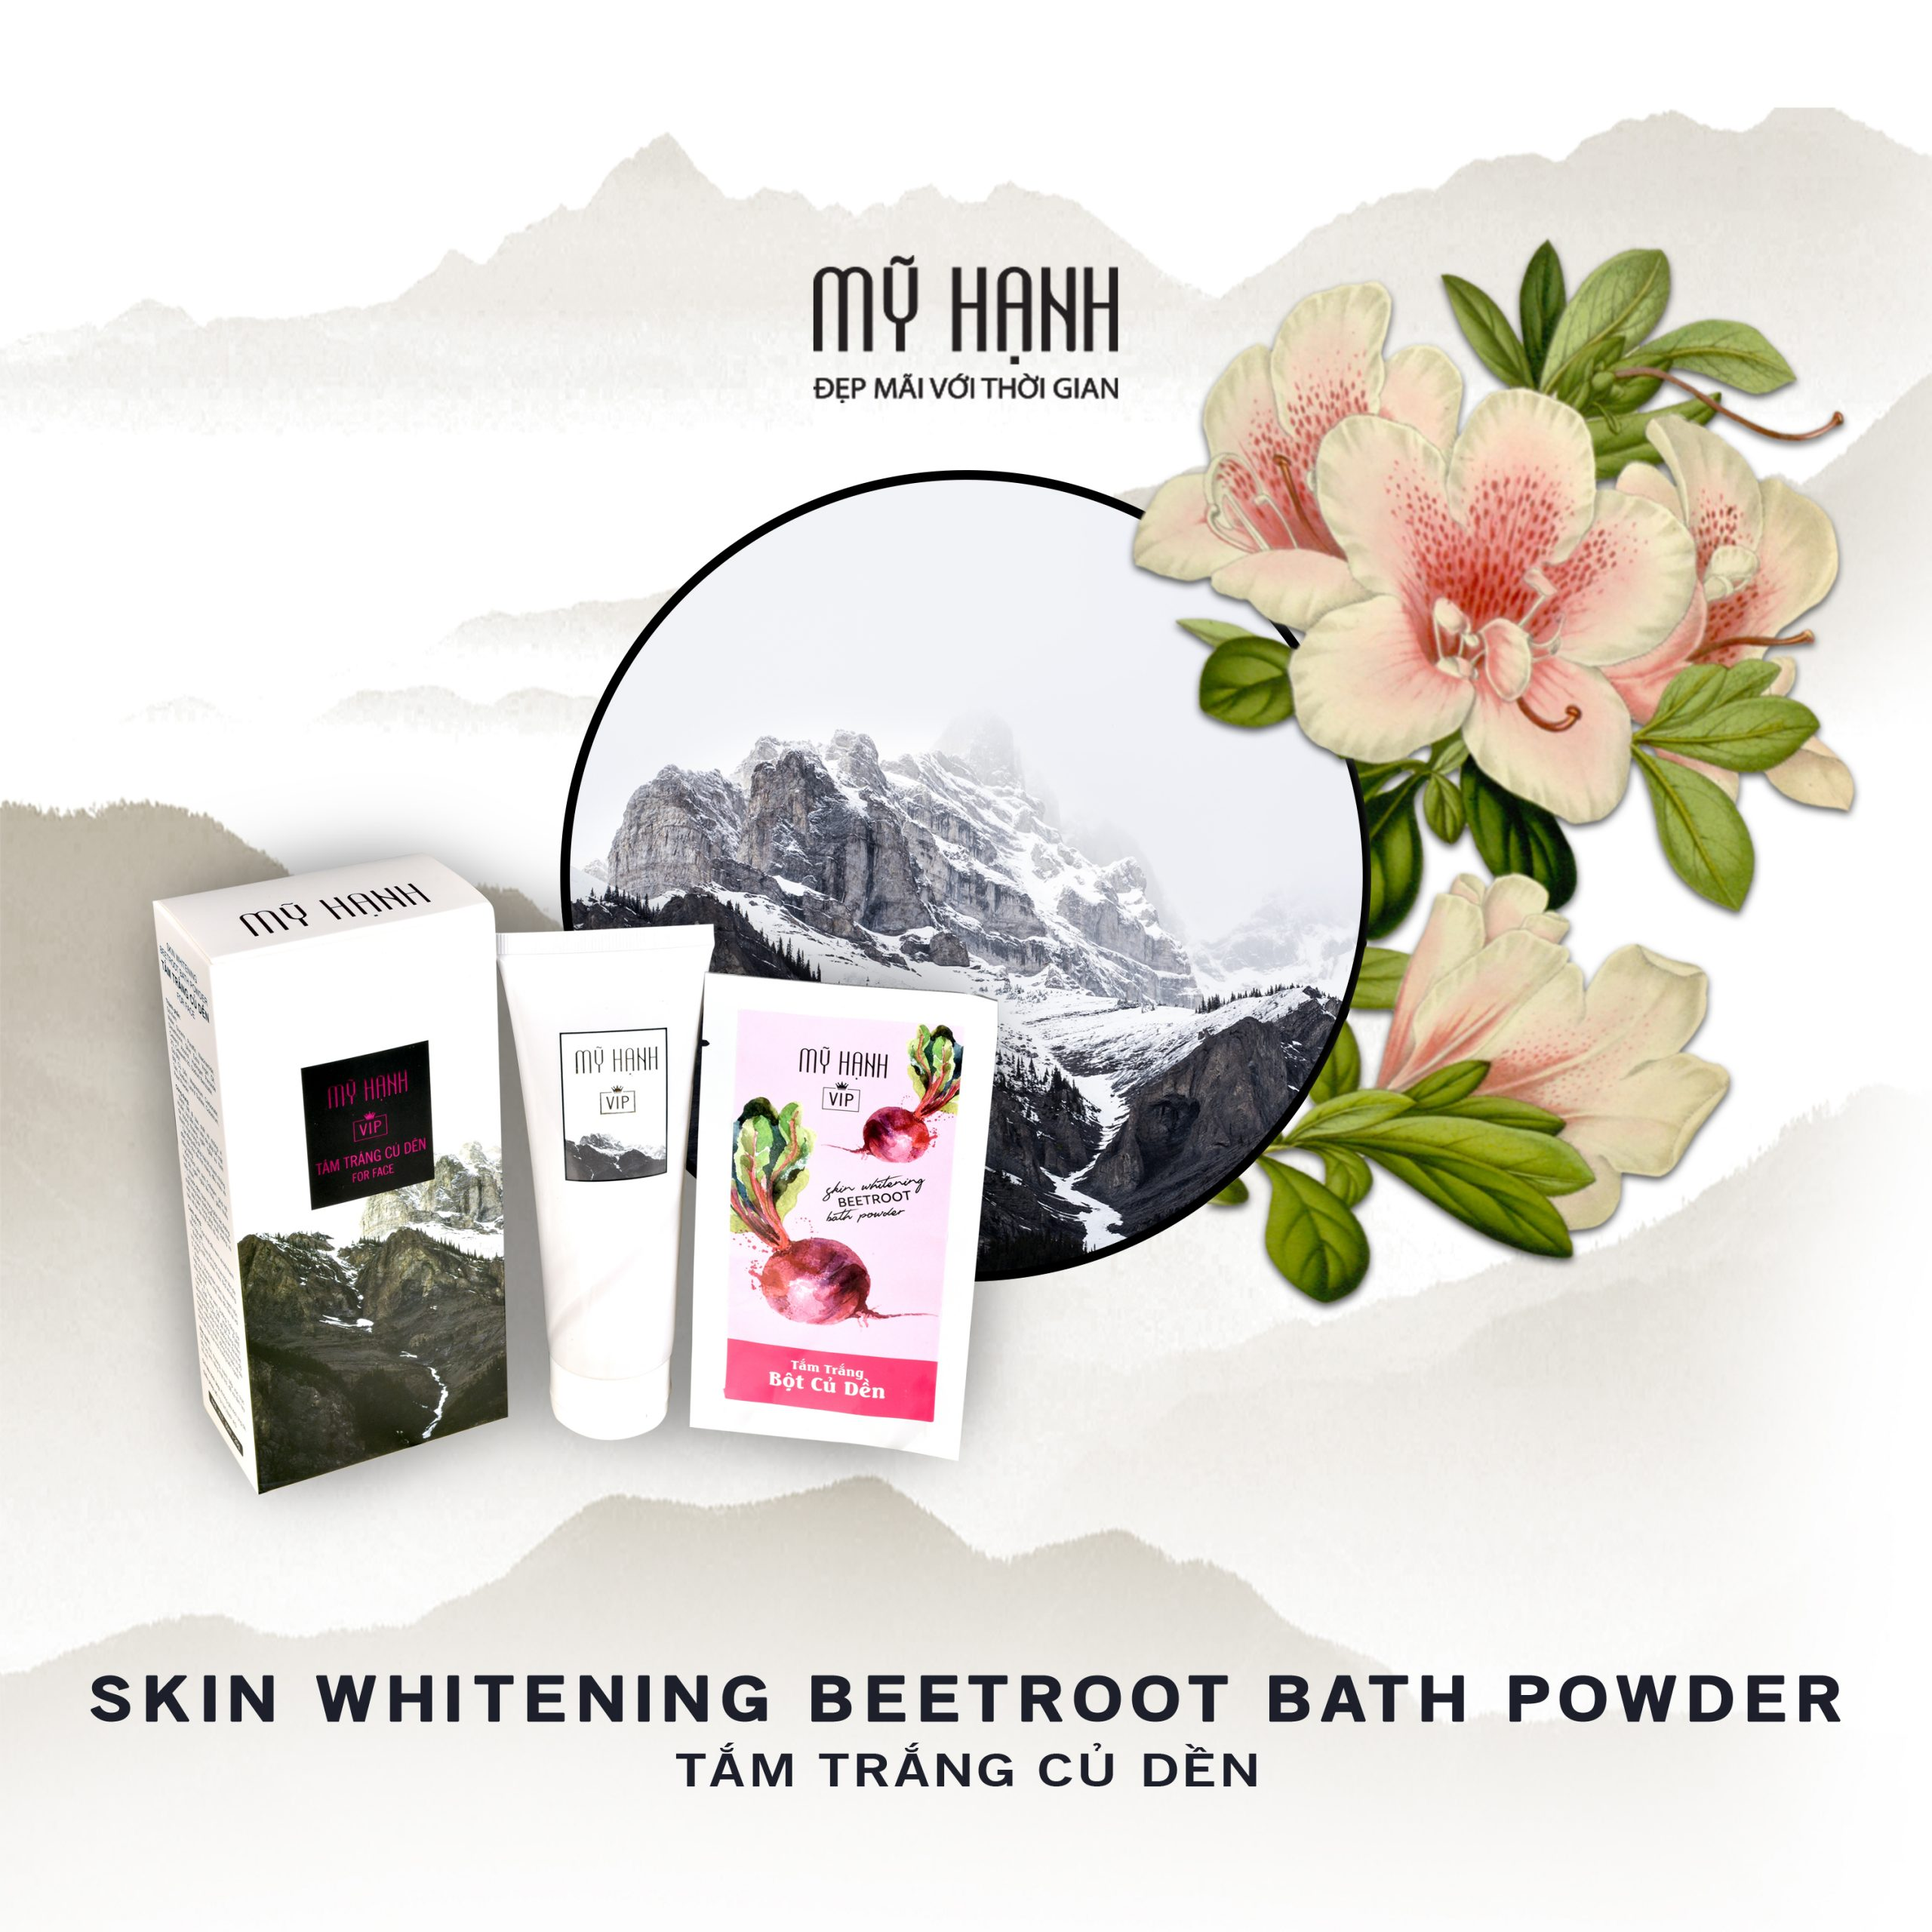 SKIN WHITENING BEETROOT BATH POWDER (BODY)